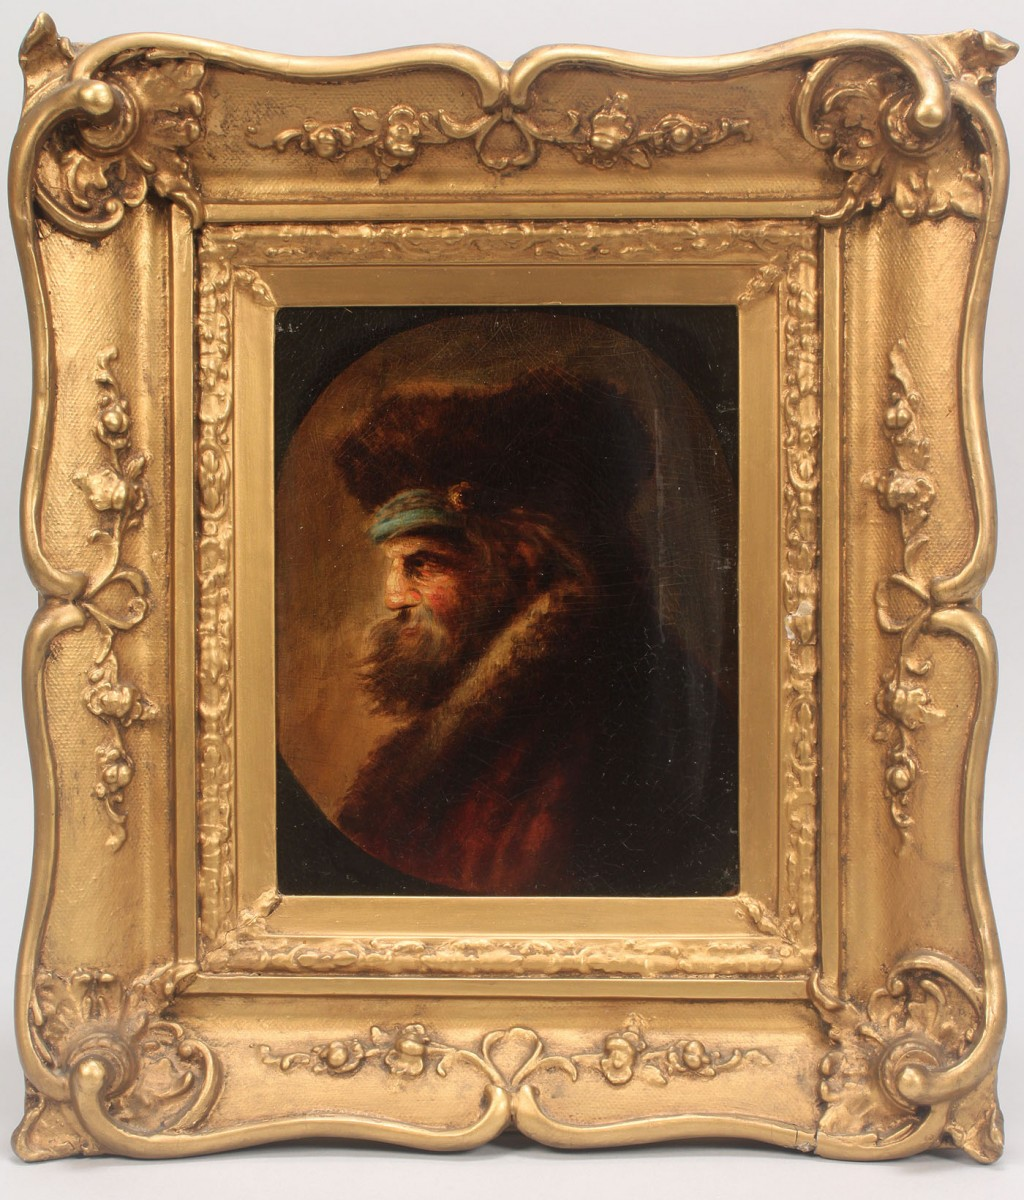 Lot 489: Dutch School, 17th c. style, oil on panel, Portrai